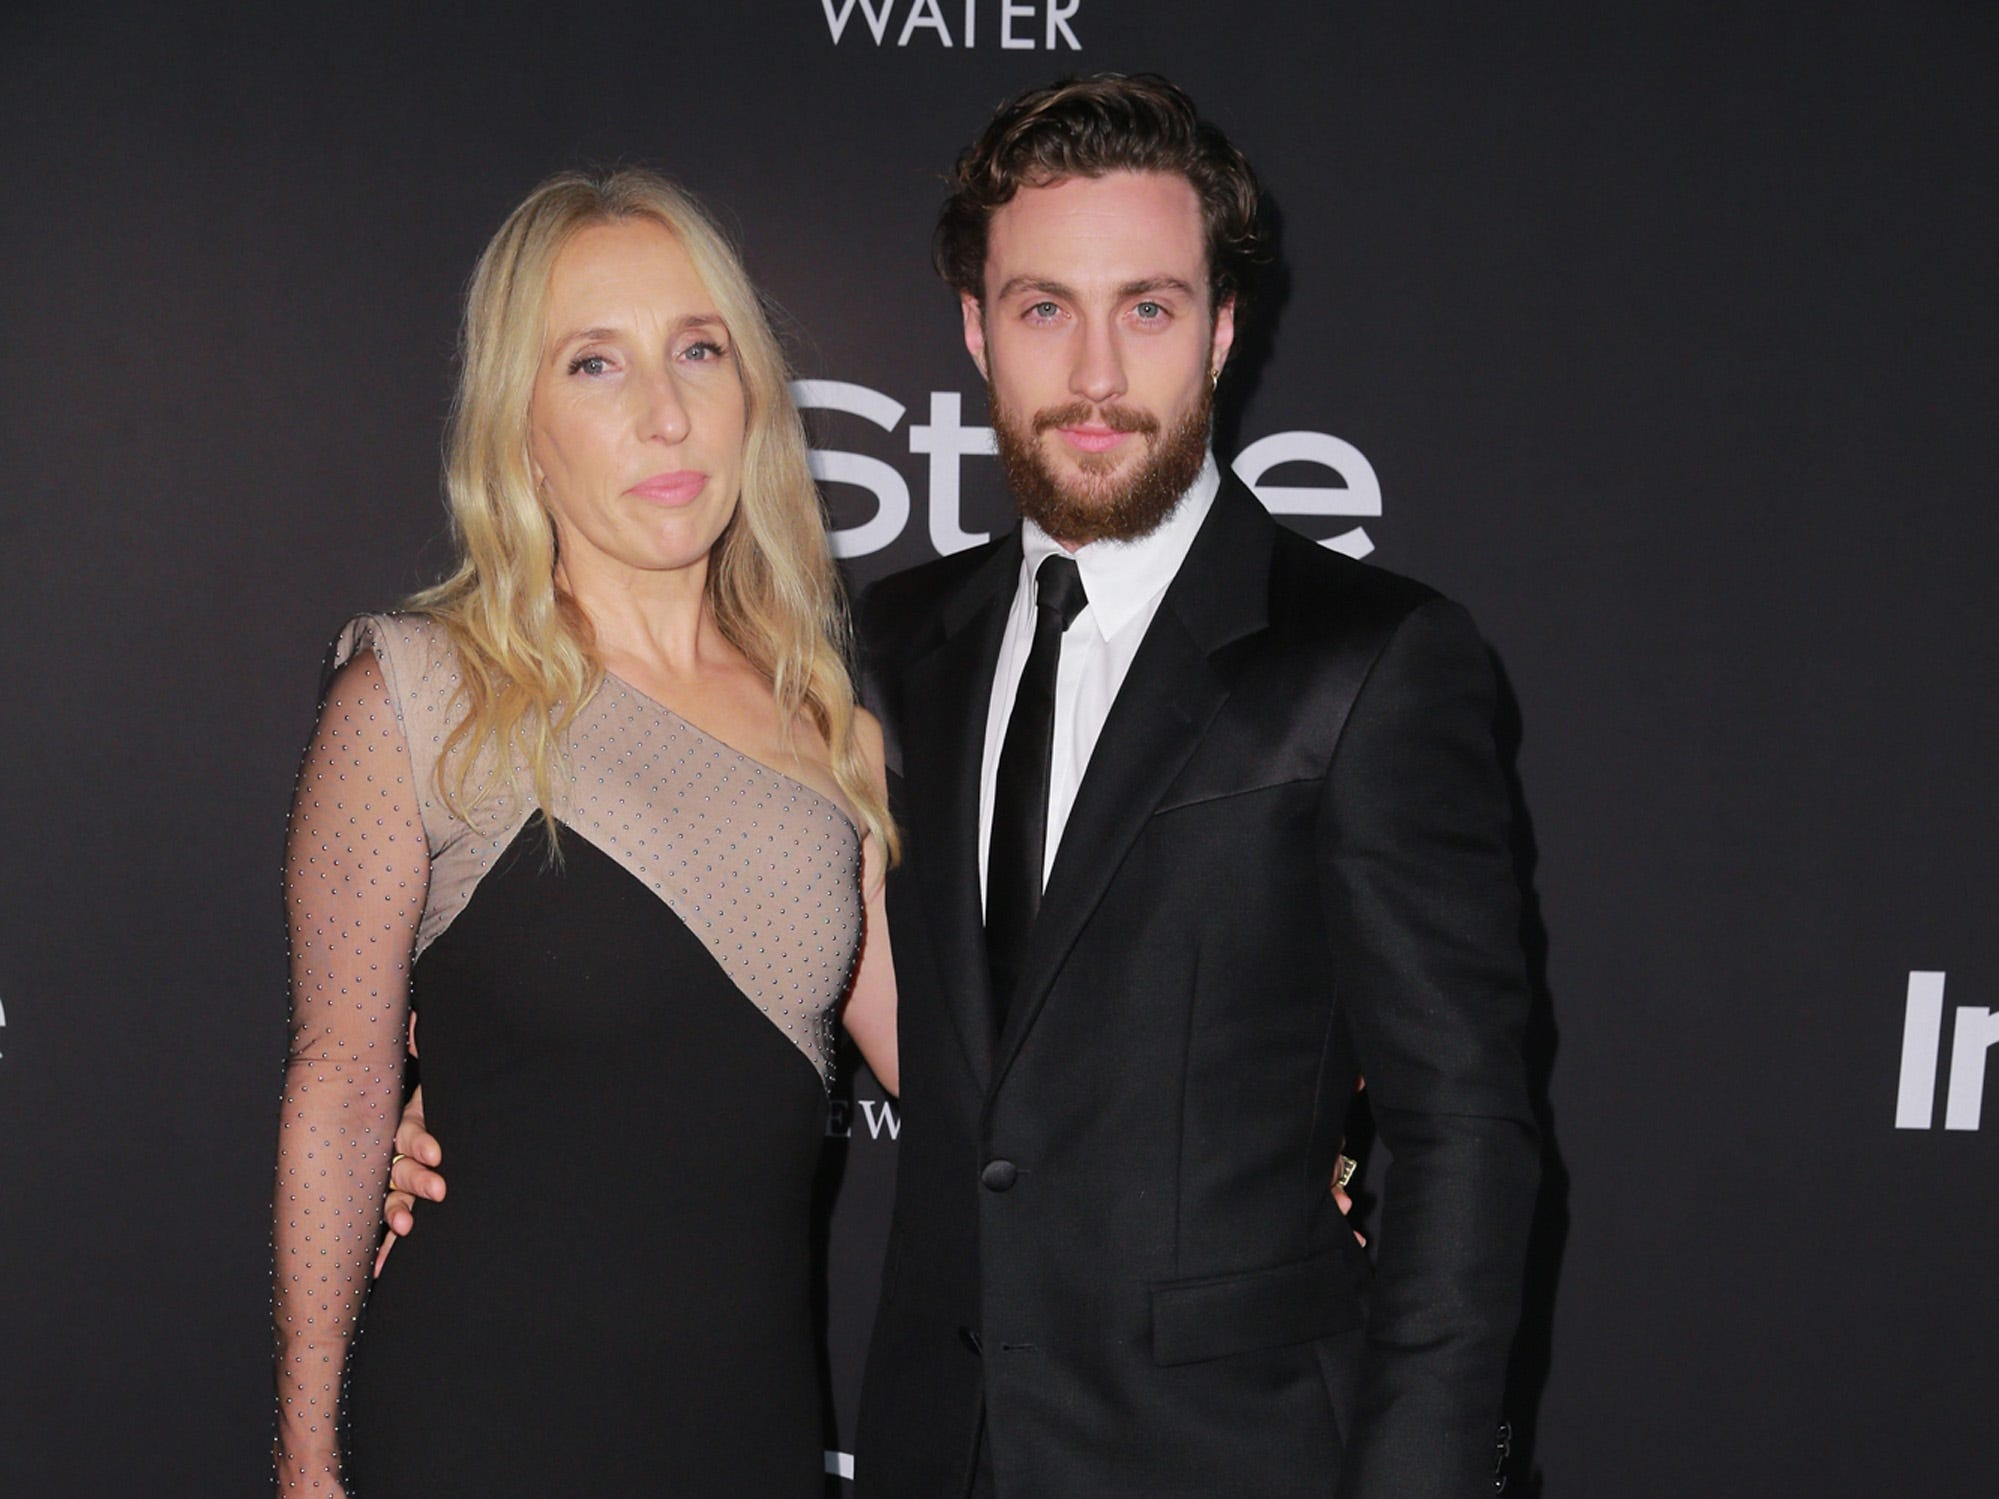 LOS ANGELES, CA - OCTOBER 22:  Sam Taylor-Johnson (L) and Aaron Taylor-Johnson attend the 2018 InStyle Awards at The Getty Center on October 22, 2018 in Los Angeles, California.  (Photo by Rich Fury/Getty Images) ORG XMIT: 775236597 ORIG FILE ID: 1052793762